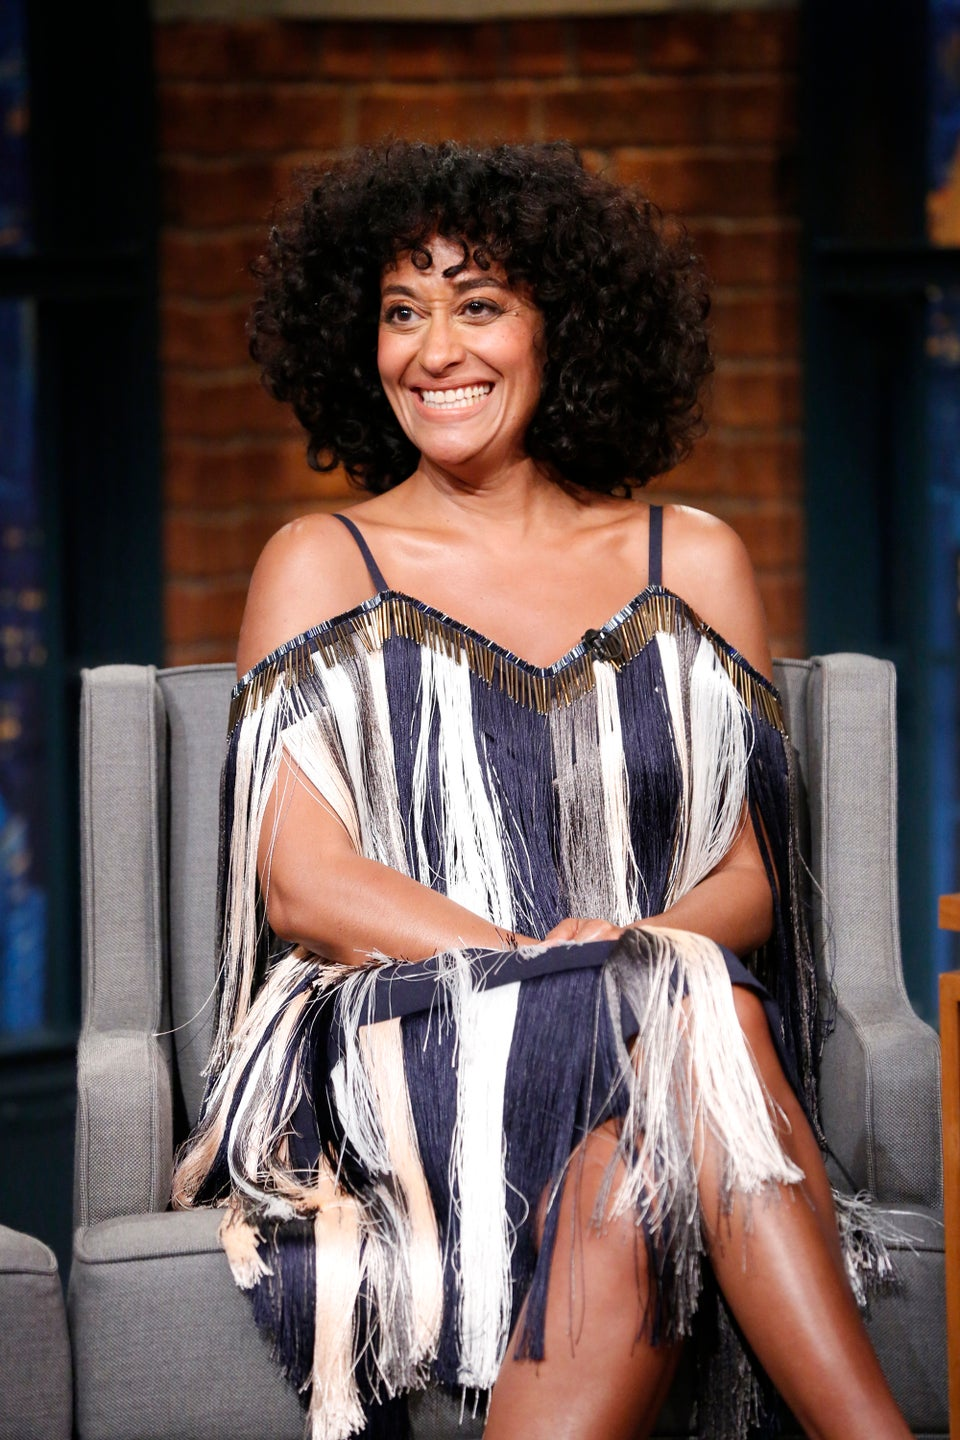 The Internet Wants Tracee Ellis Ross To Play Ms. Frizzle —And She's Interested